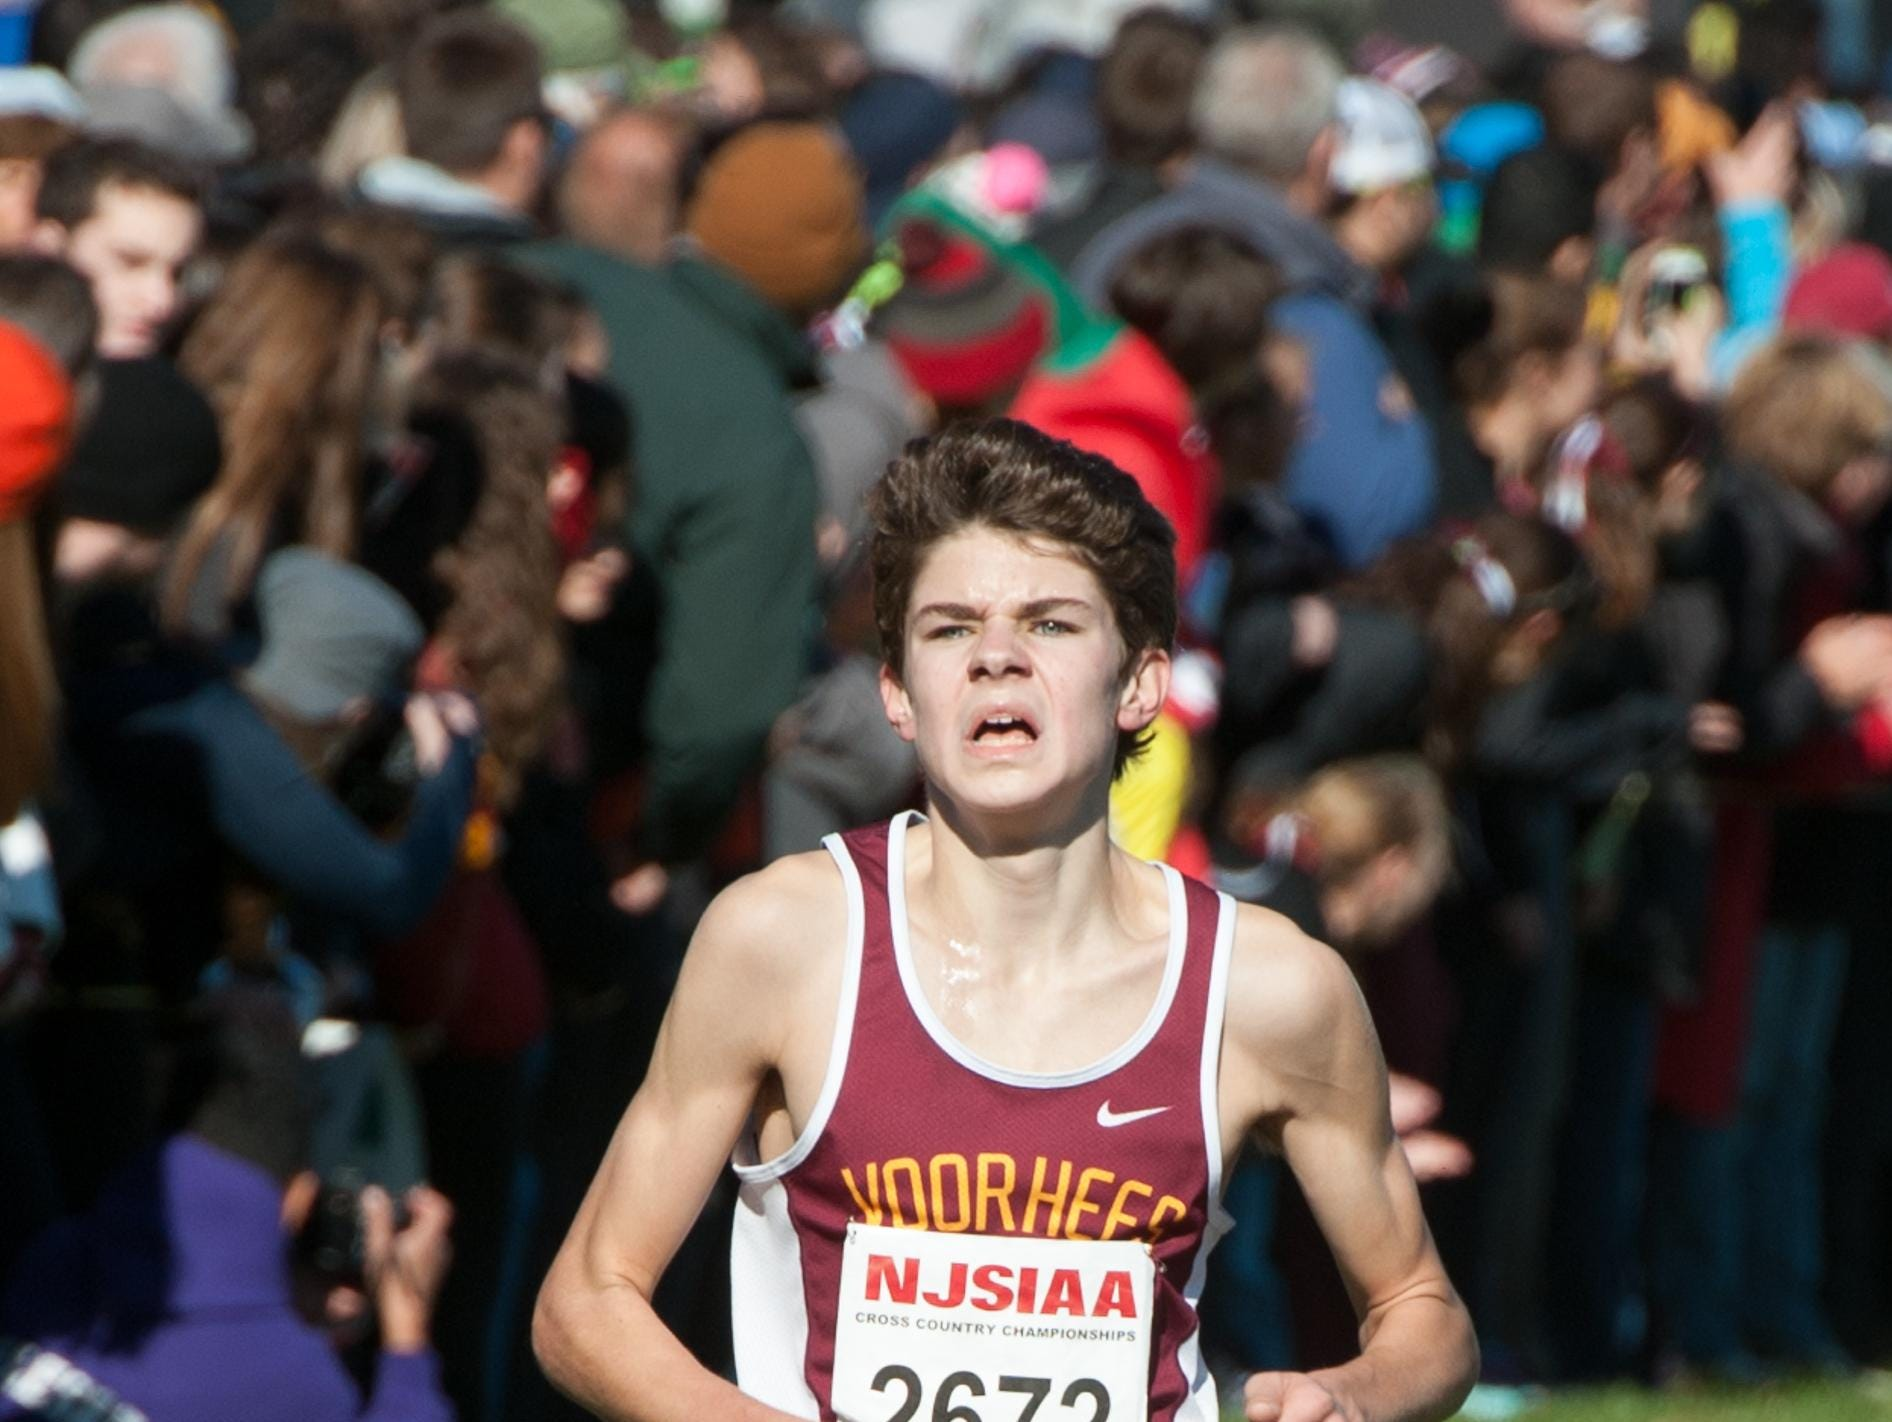 Chris Romero of Voorhees finished in 10th place at the Nike Northeast Nationals in Wappingers Falls, N.Y. on Saturday.